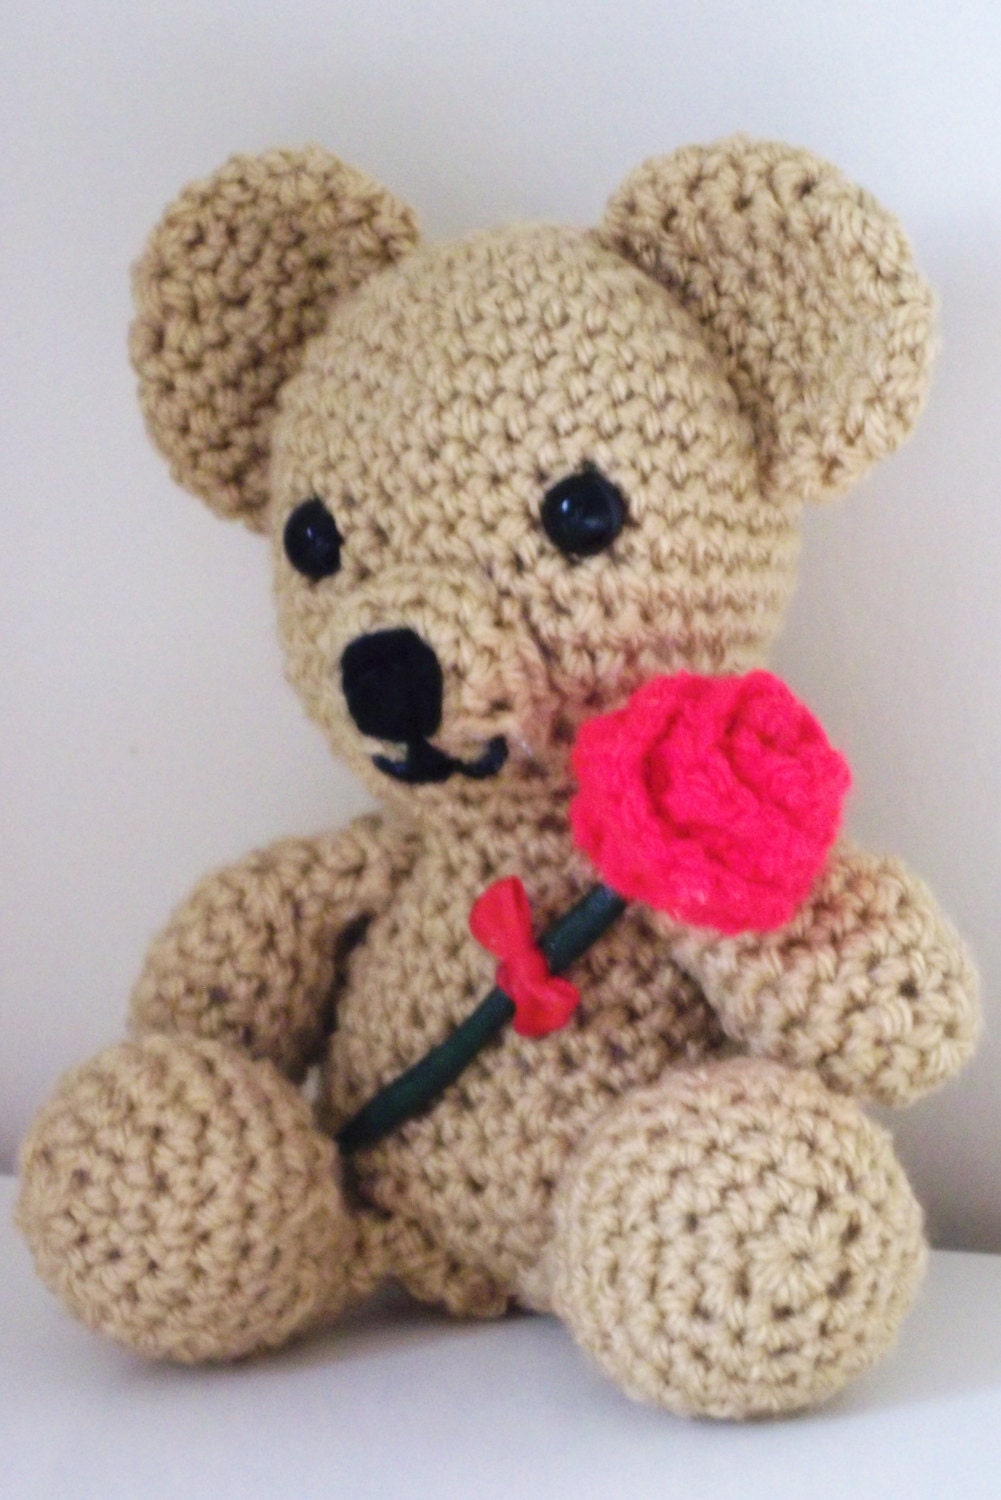 Sale  Reduced in Price. Hand Crocheted Teddy Bear holding a Red Rose. Show Someone you Care!  UK seller!